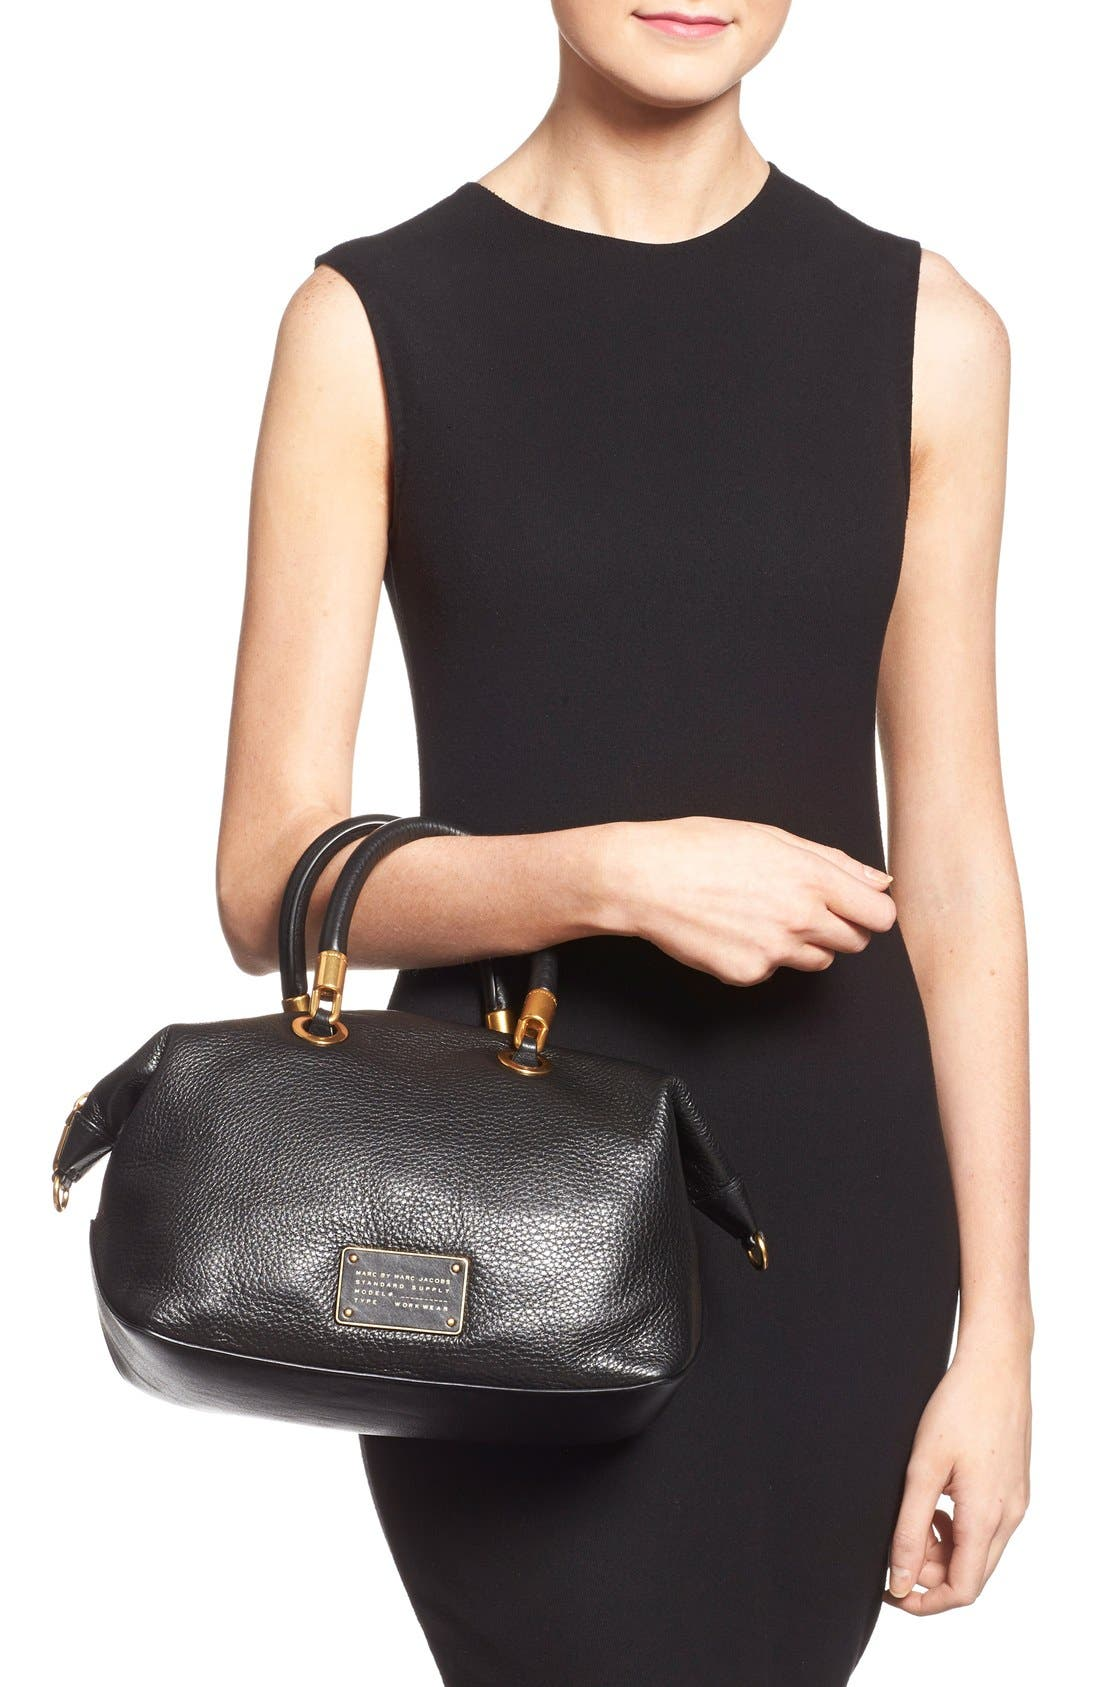 MARC JACOBS, MARC BY MARC JACOBS 'New Too Hot to Handle' Leather Satchel, Alternate thumbnail 5, color, 001